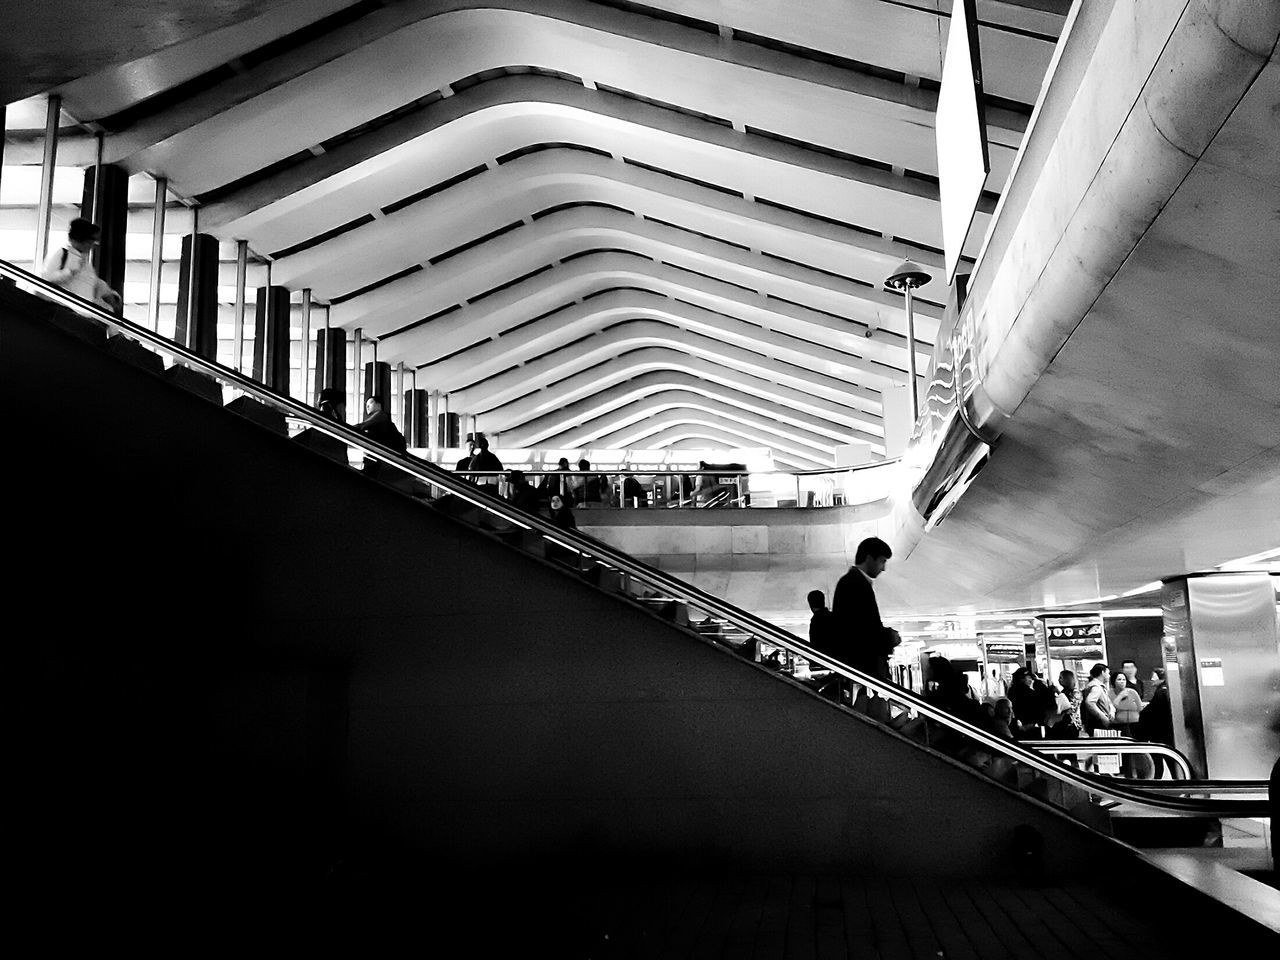 real people, indoors, large group of people, modern, men, lifestyles, escalator, architecture, transportation, women, staircase, leisure activity, built structure, steps and staircases, railroad station, public transportation, walking, convenience, illuminated, transportation building - type of building, the way forward, low angle view, day, technology, commuter, people, adult, adults only